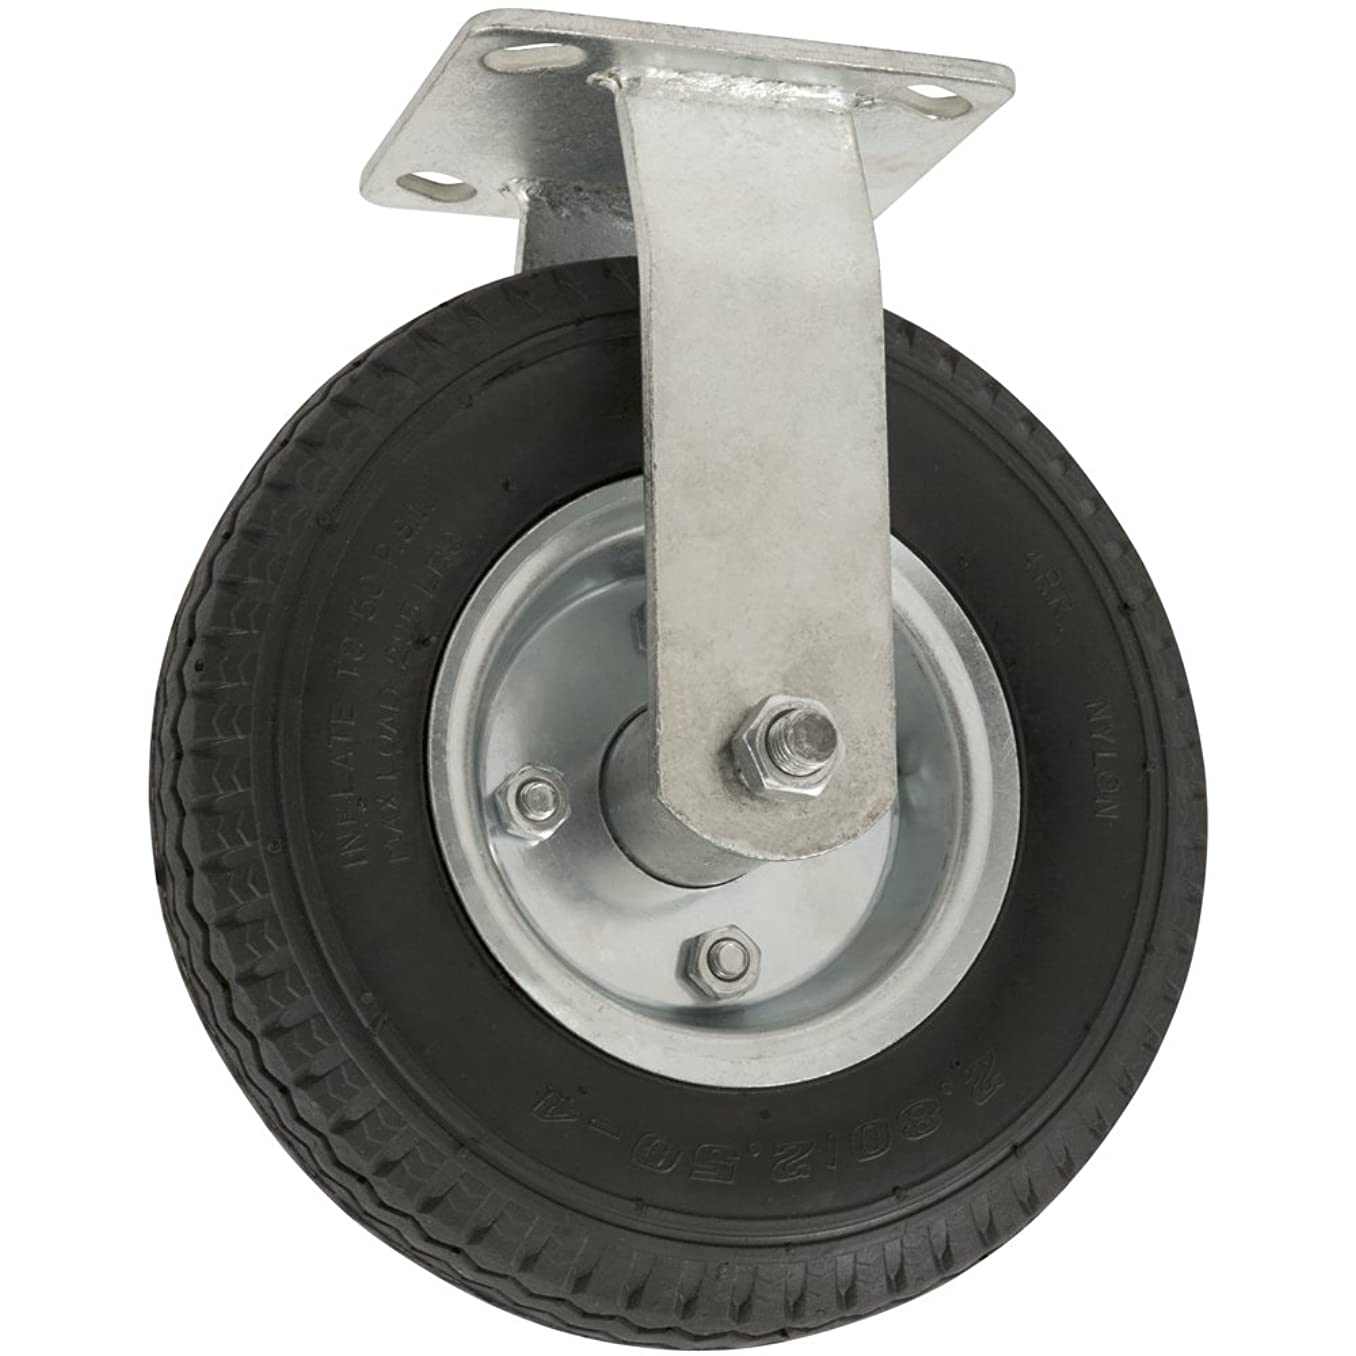 Pneumatic Caster Wheel with Rigid Non-Swivel Top Plate  - 8-Inch -  310 lb. Load Capacity  - Air-Filled Wheel Provides a Cushioned Ride & Shock Absorption Best Suited for Outdoor Use